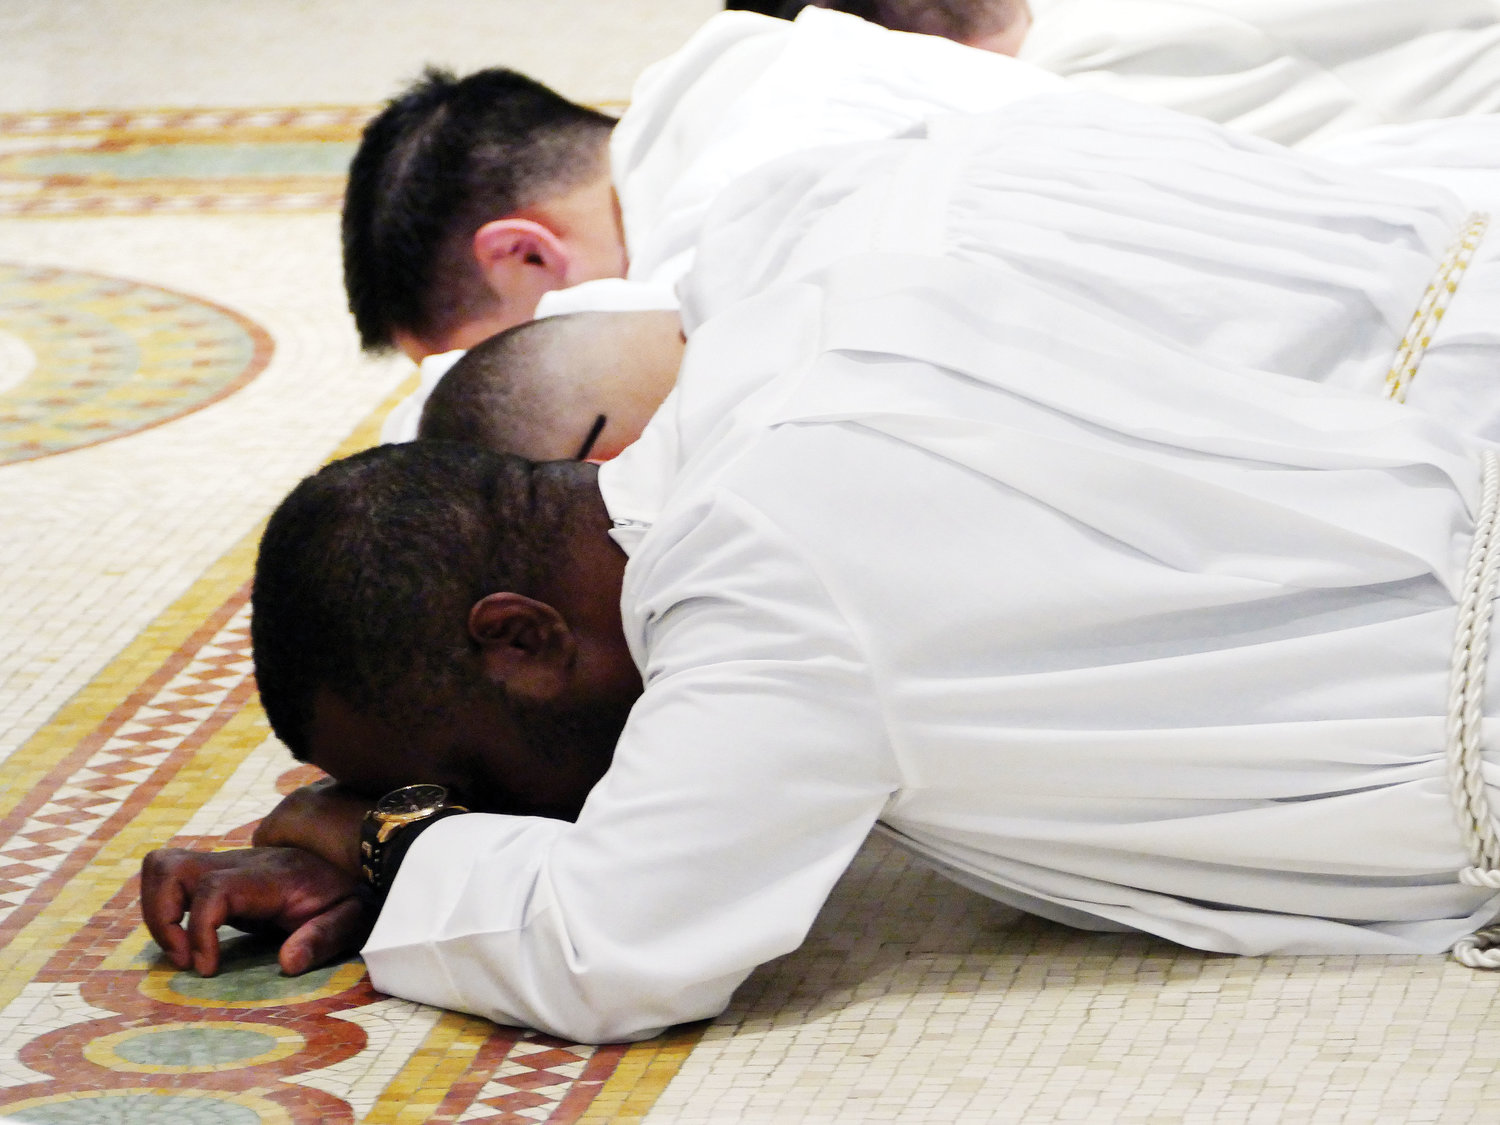 Three men lie prostrate in the sanctuary of the seminary chapel during the Rite of Ordination.